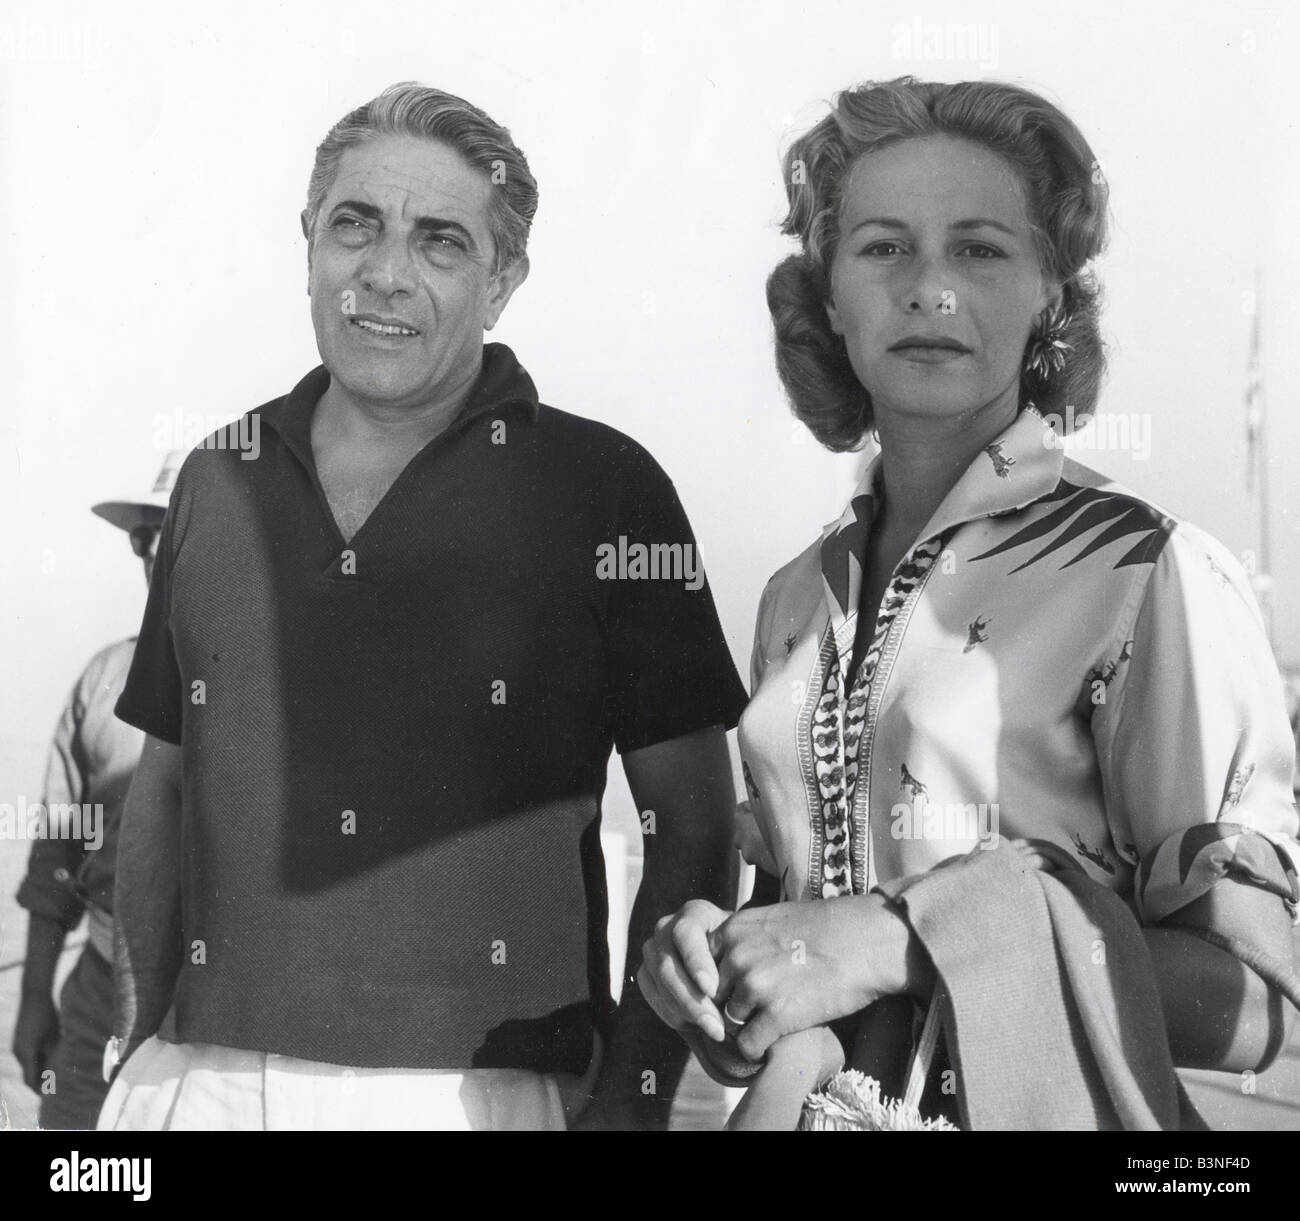 Black and white baby mobile designed and made in australia by tina - Aristotle Onassis And Wife Tina At The Venice Film Festival In 1957 Stock Image